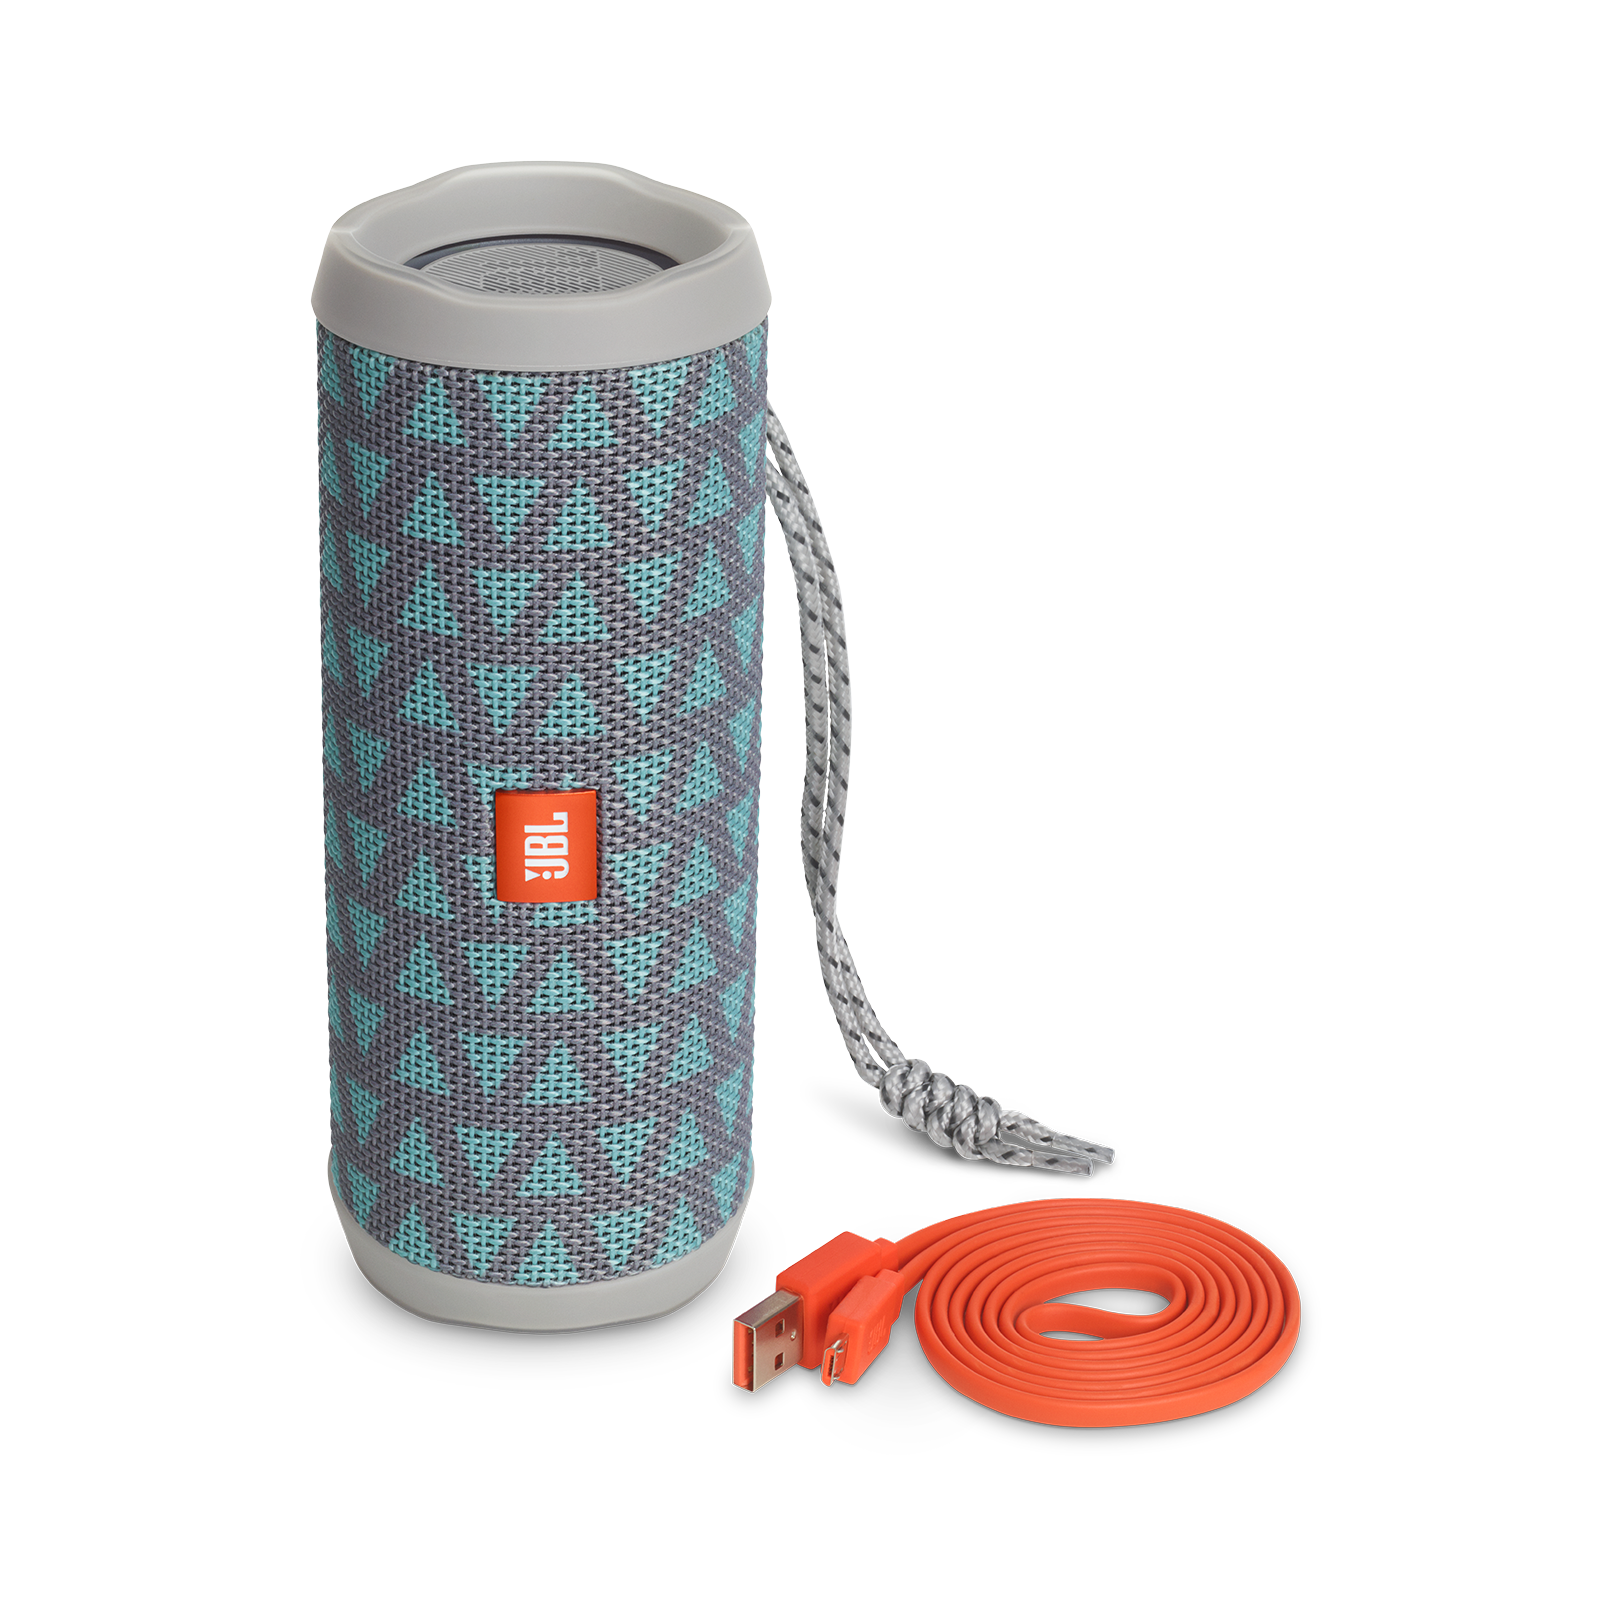 JBL Flip 4 Special Edition - Trio - A full-featured waterproof portable Bluetooth speaker with surprisingly powerful sound. - Detailshot 4